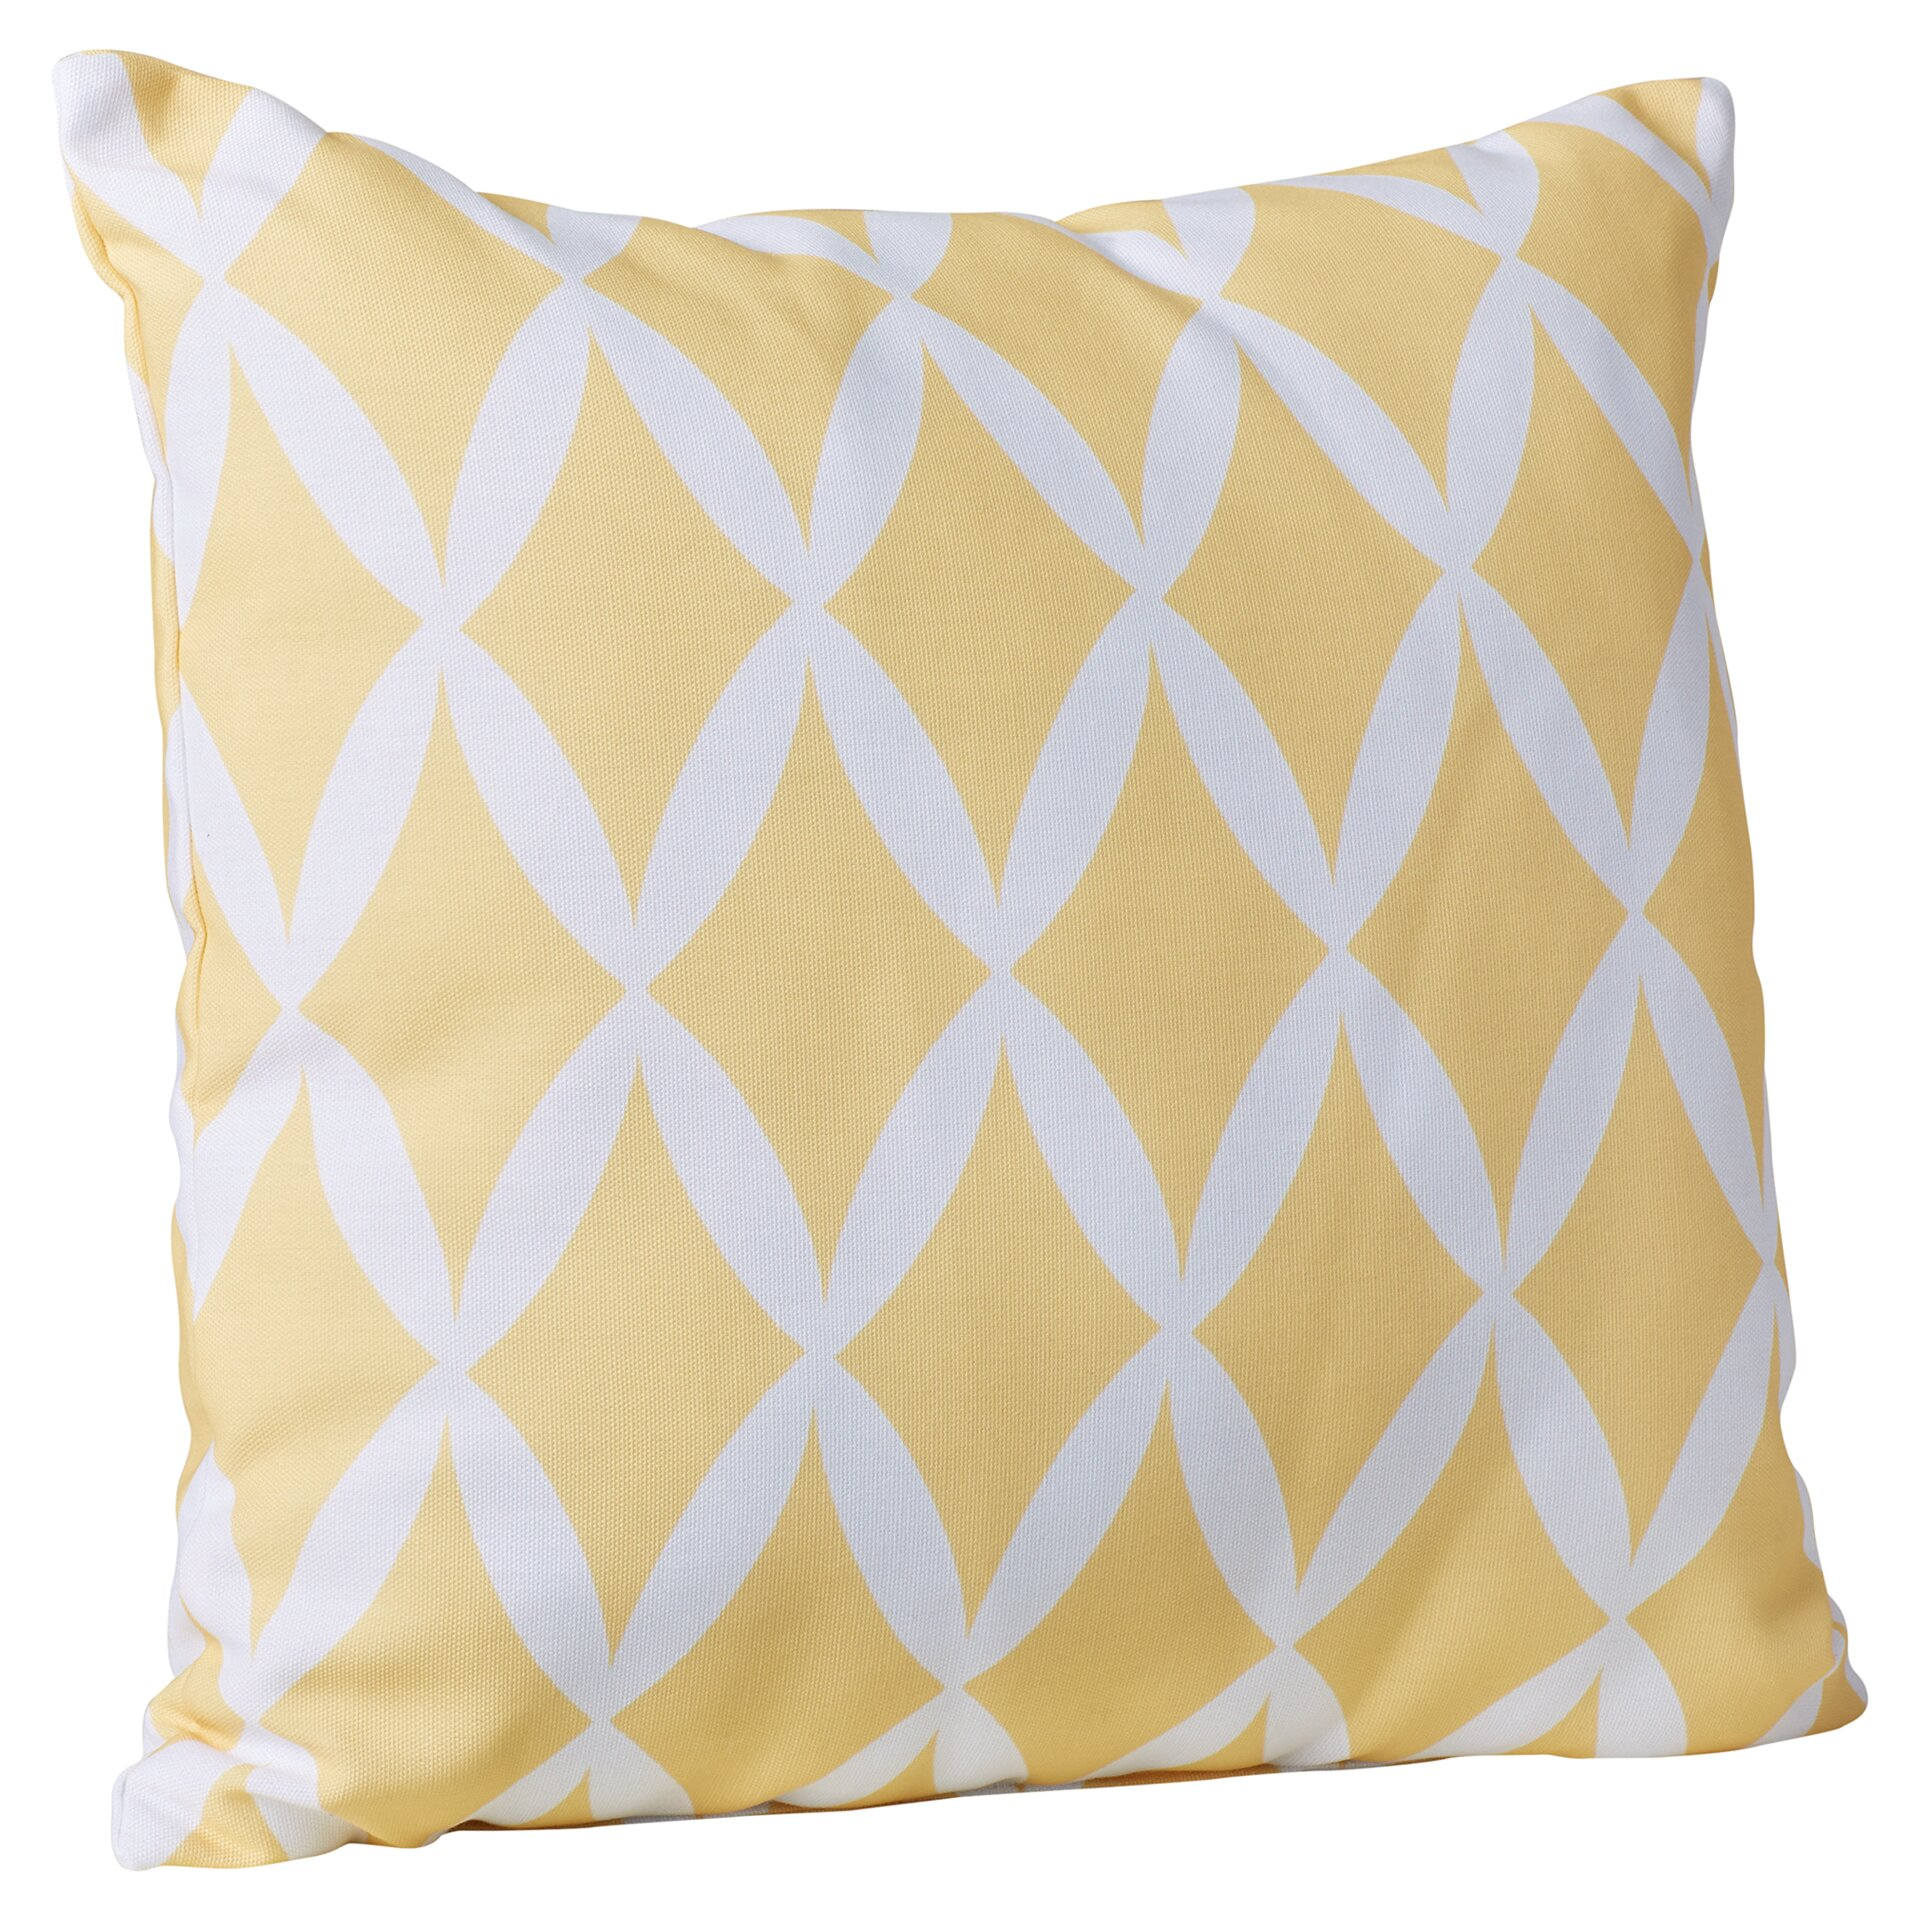 Down Throw Pillows For Couch : Brayden Studio Herman Geometric Down Throw Pillow & Reviews Wayfair